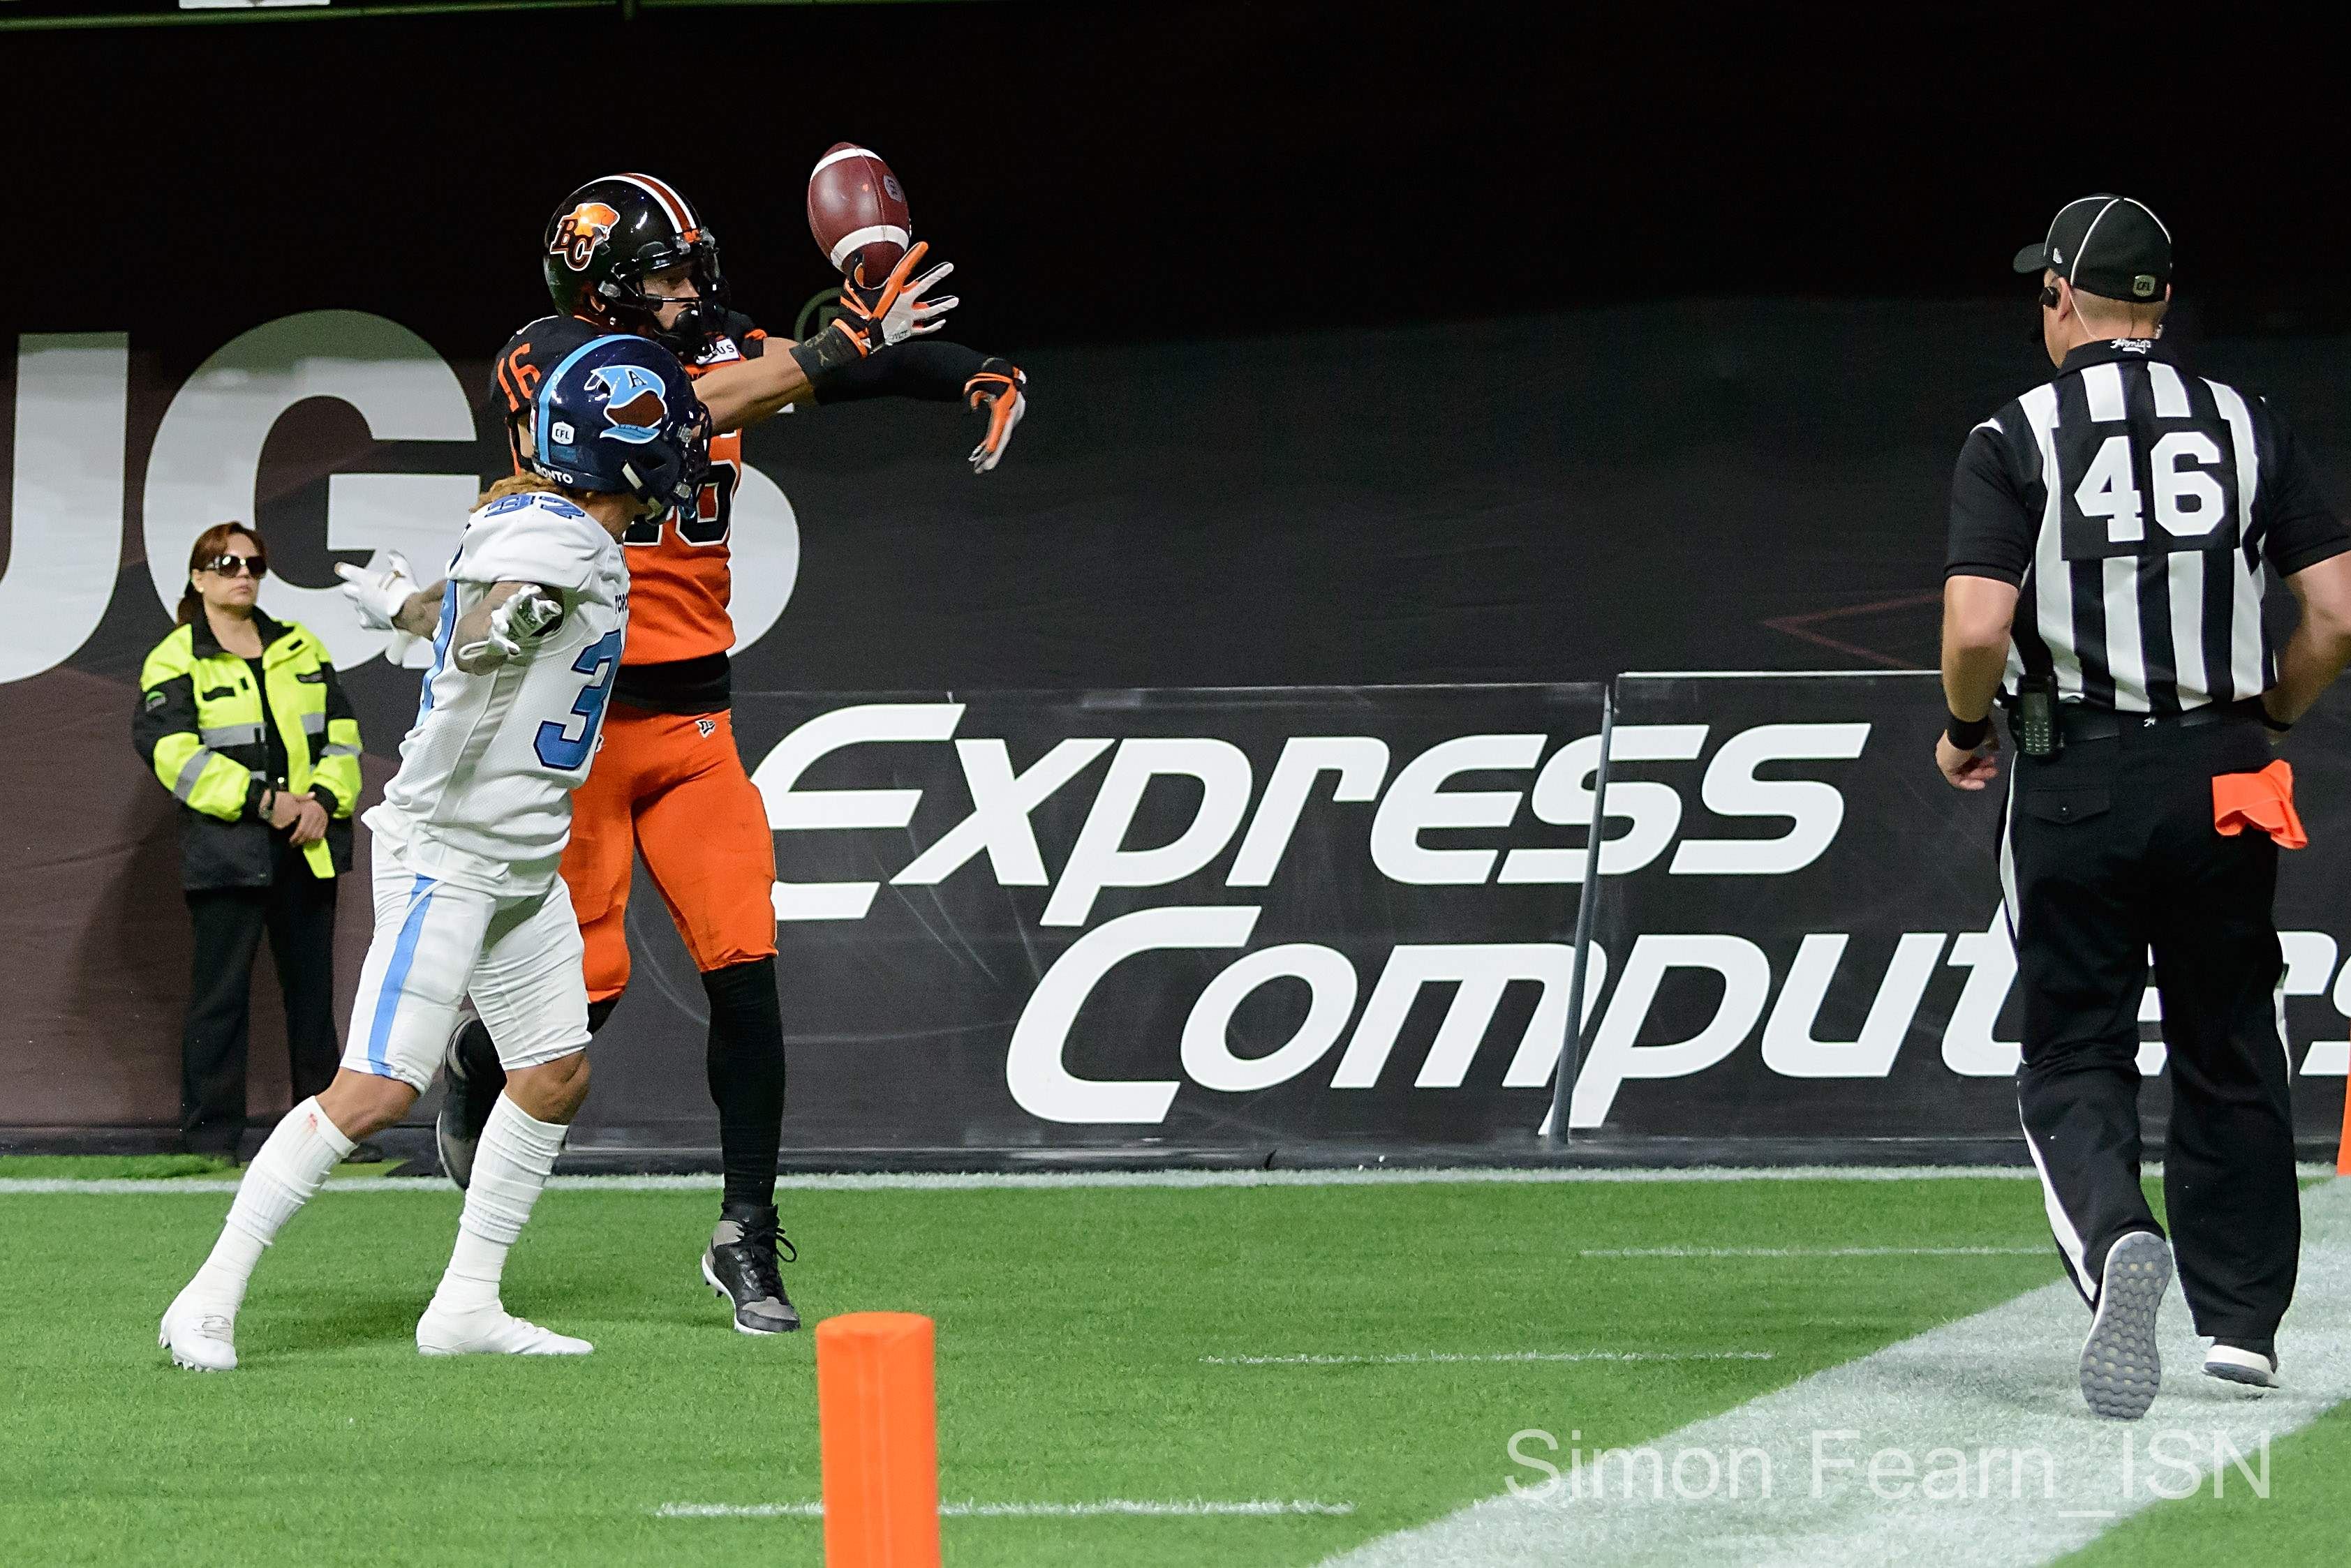 BC Lions vs Toronto Argonauts,Photo Simon Fearn ISN